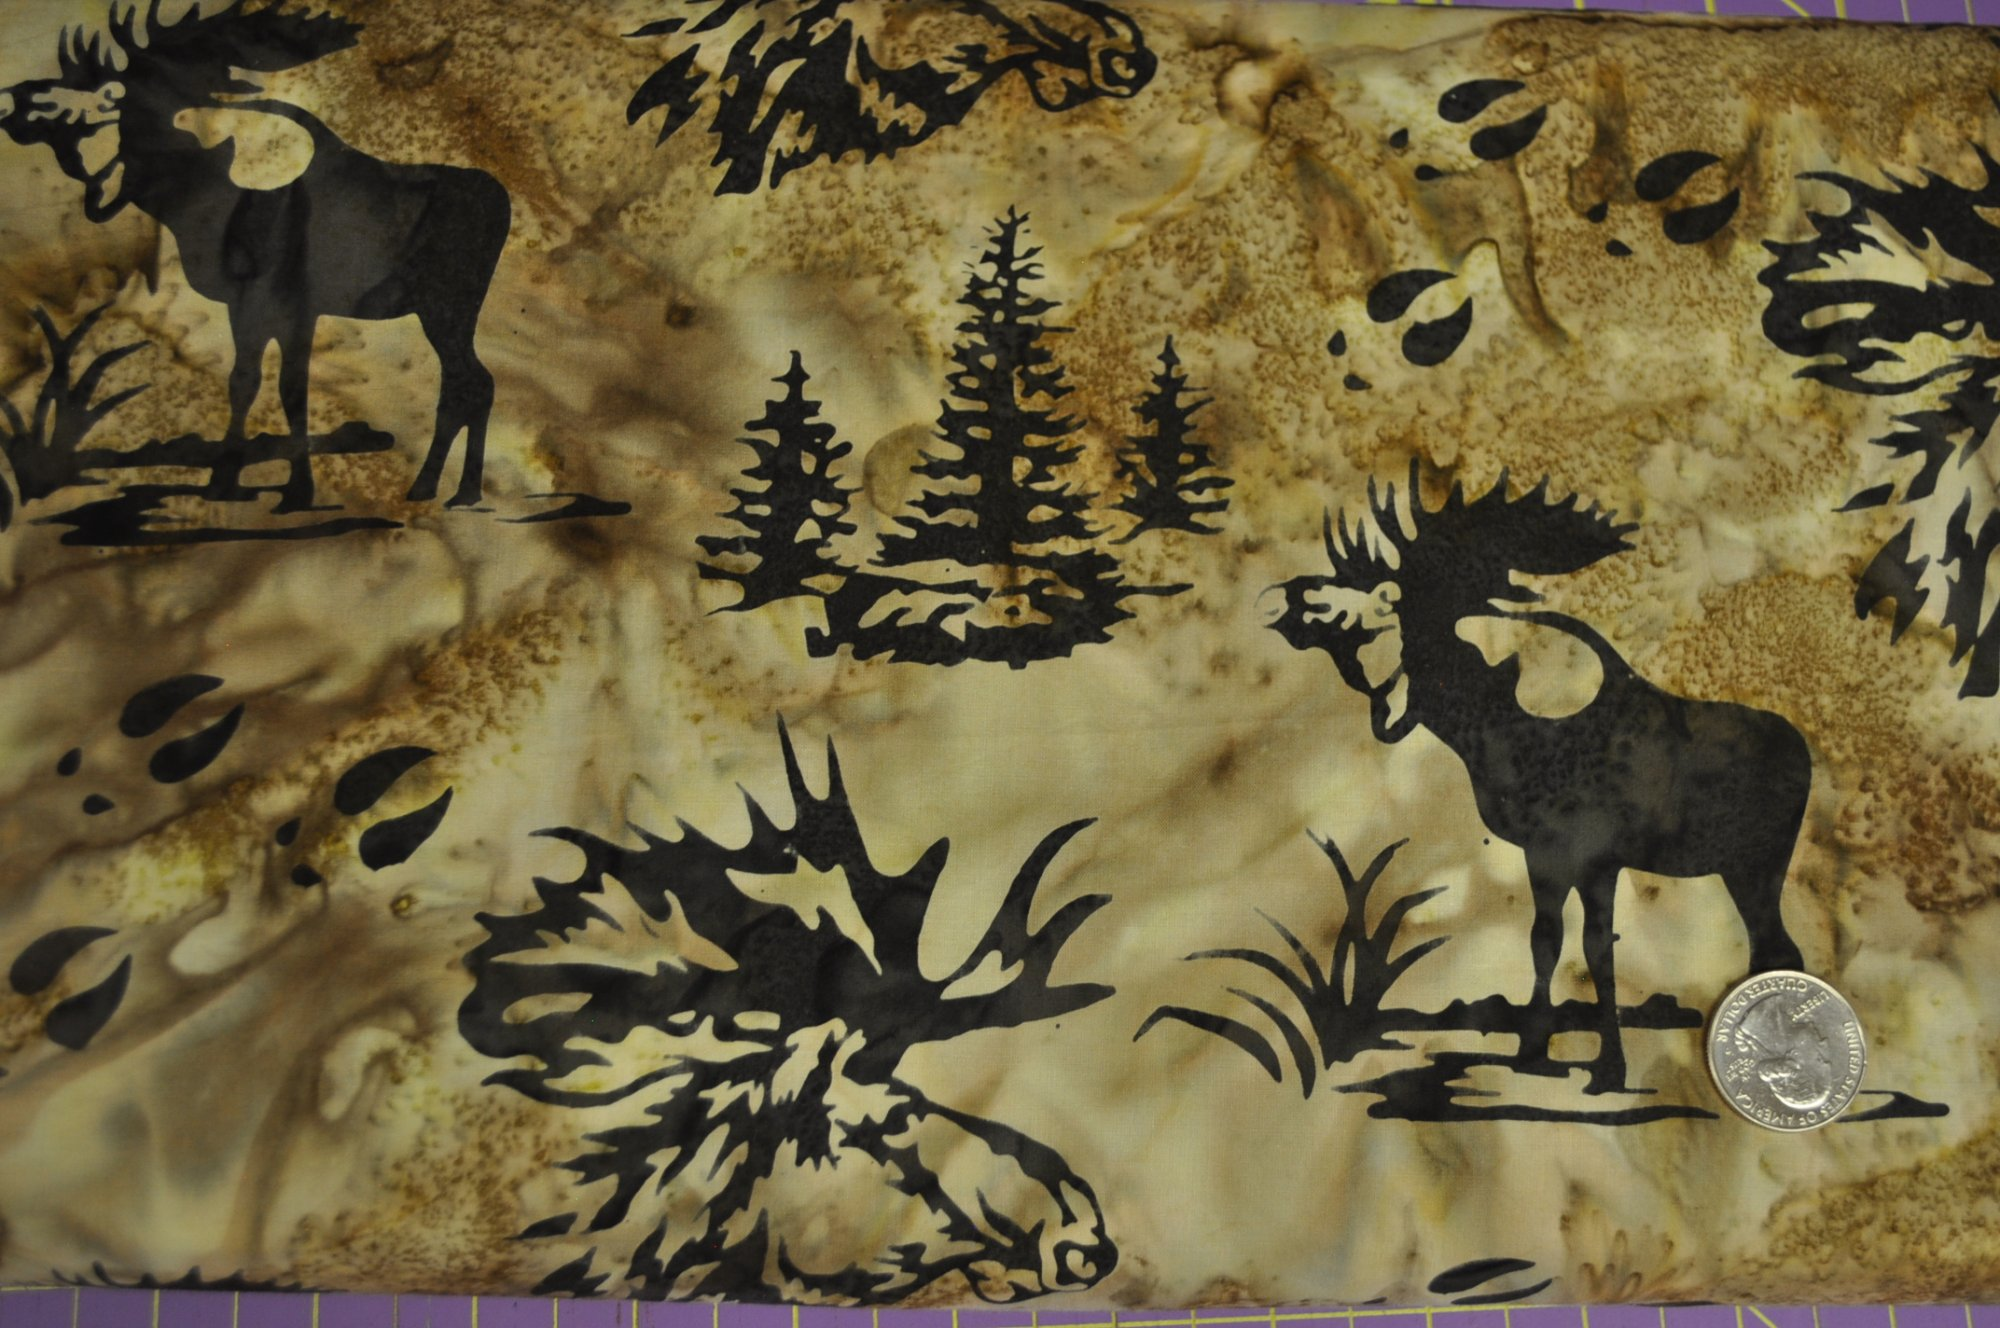 Bali Batik Moose and Prints Mocha N2911-171